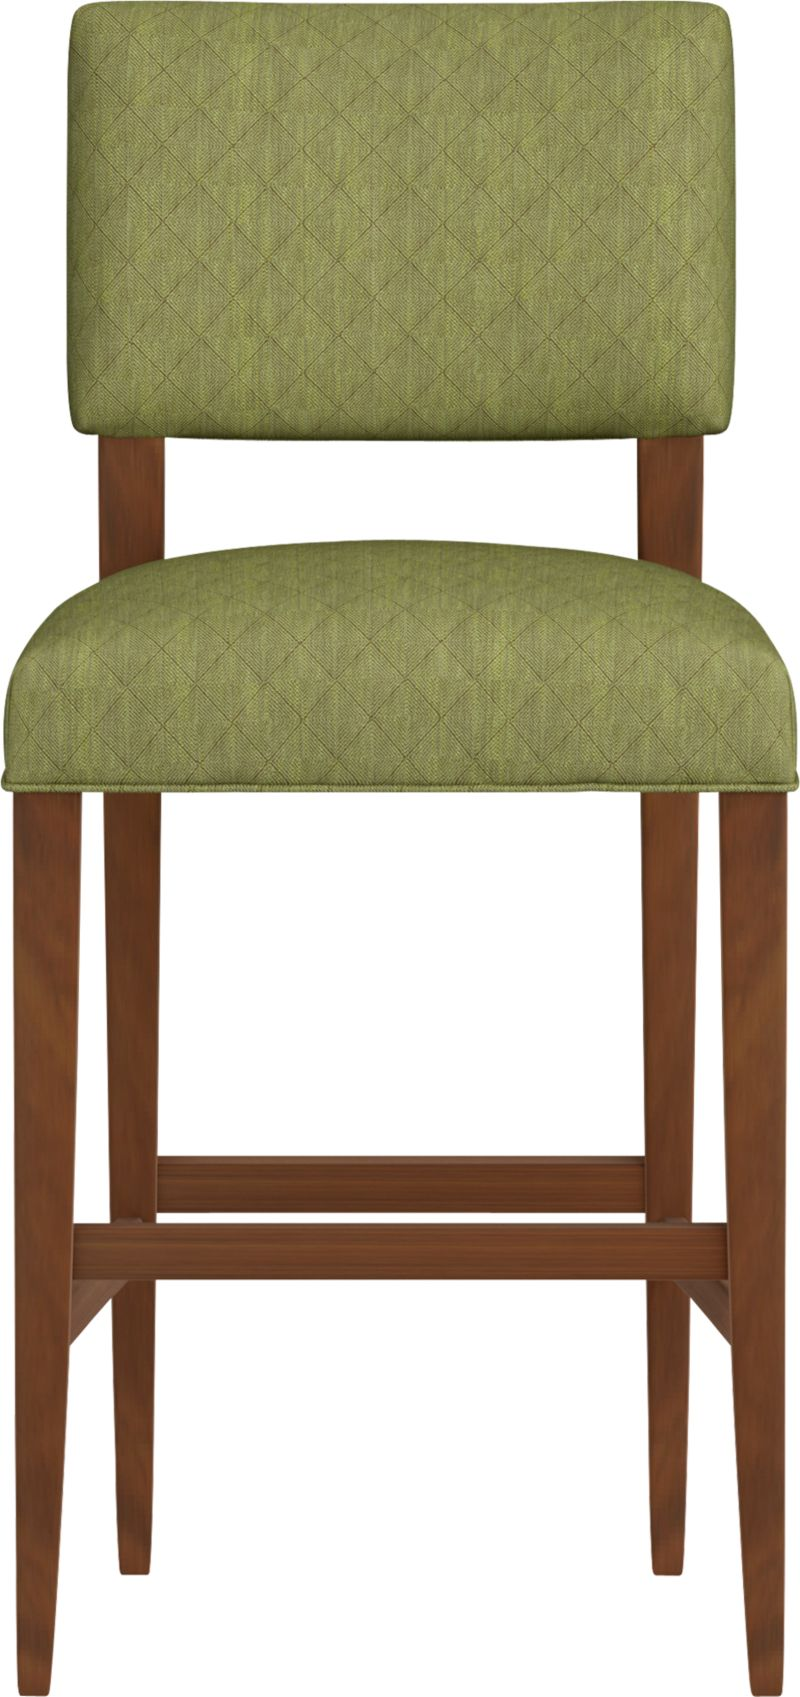 "Cody receives your guests with all the generous proportions and comfort of a fully upholstered barstool, but keeps the room light and airy with its open back design and minimal lines. The look is soft and modern: a tight-cushioned but very padded seat and contoured back made for lingering, and elegant tapering solid hardwood legs.<br /><br />After you place your order, we will send a fabric swatch via next day air for your final approval. We will contact you to verify both your receipt and approval of the fabric swatch before finalizing your order.<br /><br /><NEWTAG/><ul><li>Eco-friendly construction</li><li>Certified sustainable, kiln-dried hardwood frame</li><li>Tight seat and back cushions with soy-based foam and web suspension</li><li>Rayon-polyester-cotton blend fabric with self welt detail</li><li>32""H seat sized for bars</li><li>Made in North Carolina, USA of domestic and imported materials</li></ul>"